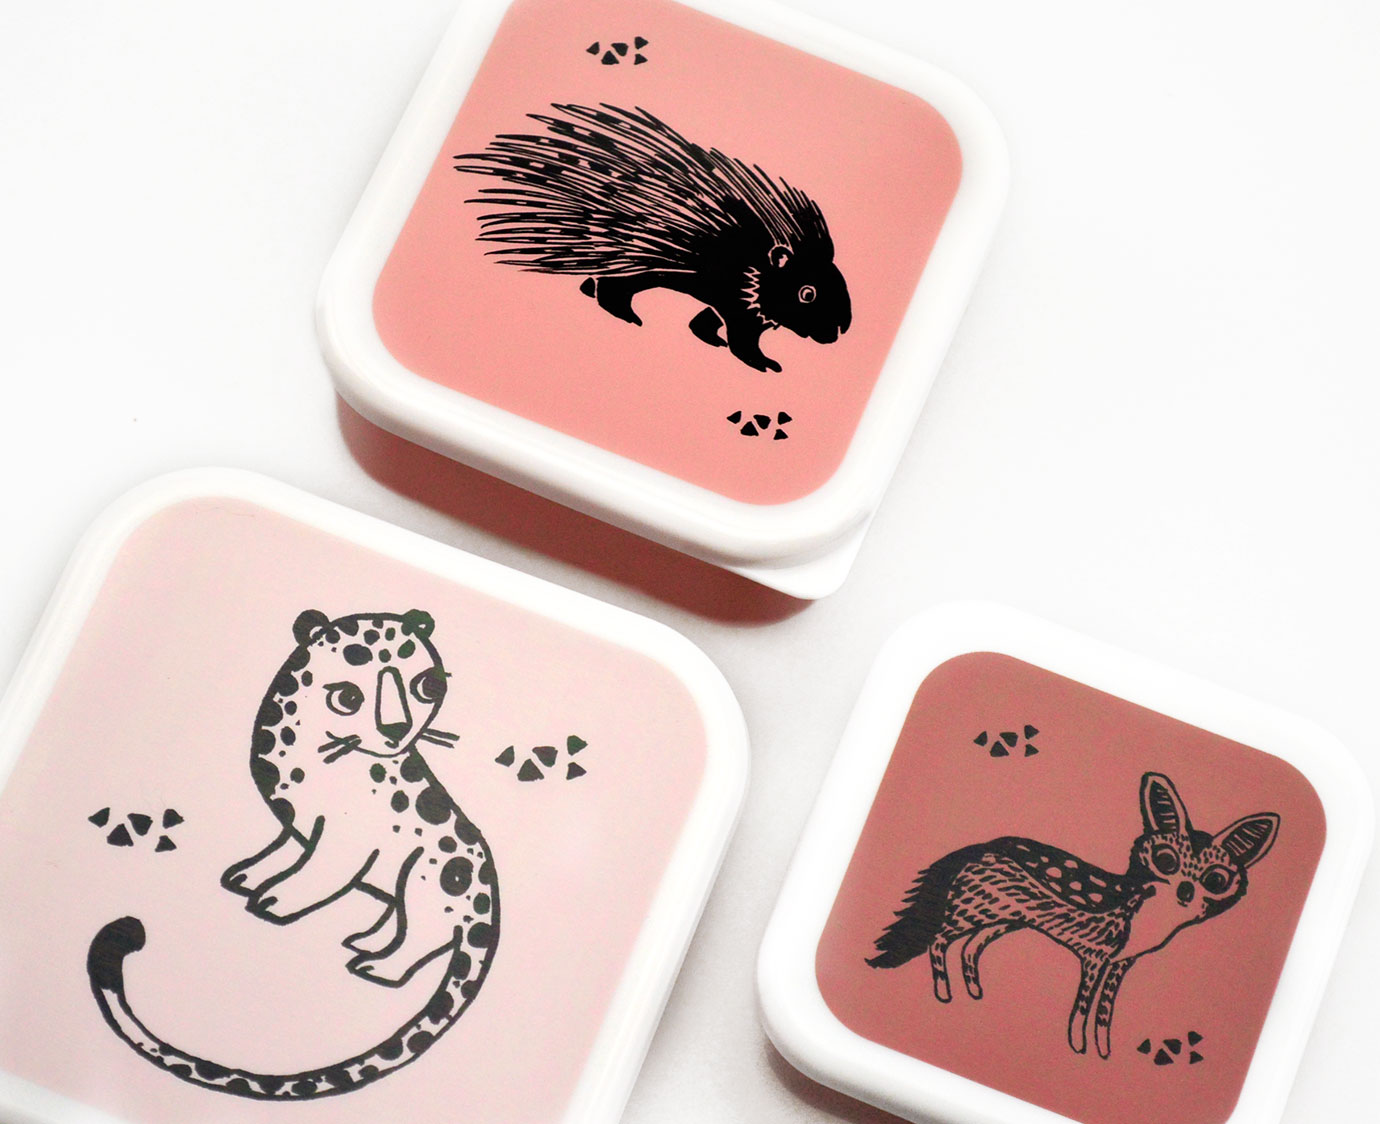 Snackdoosjes 'Black animals' kleur